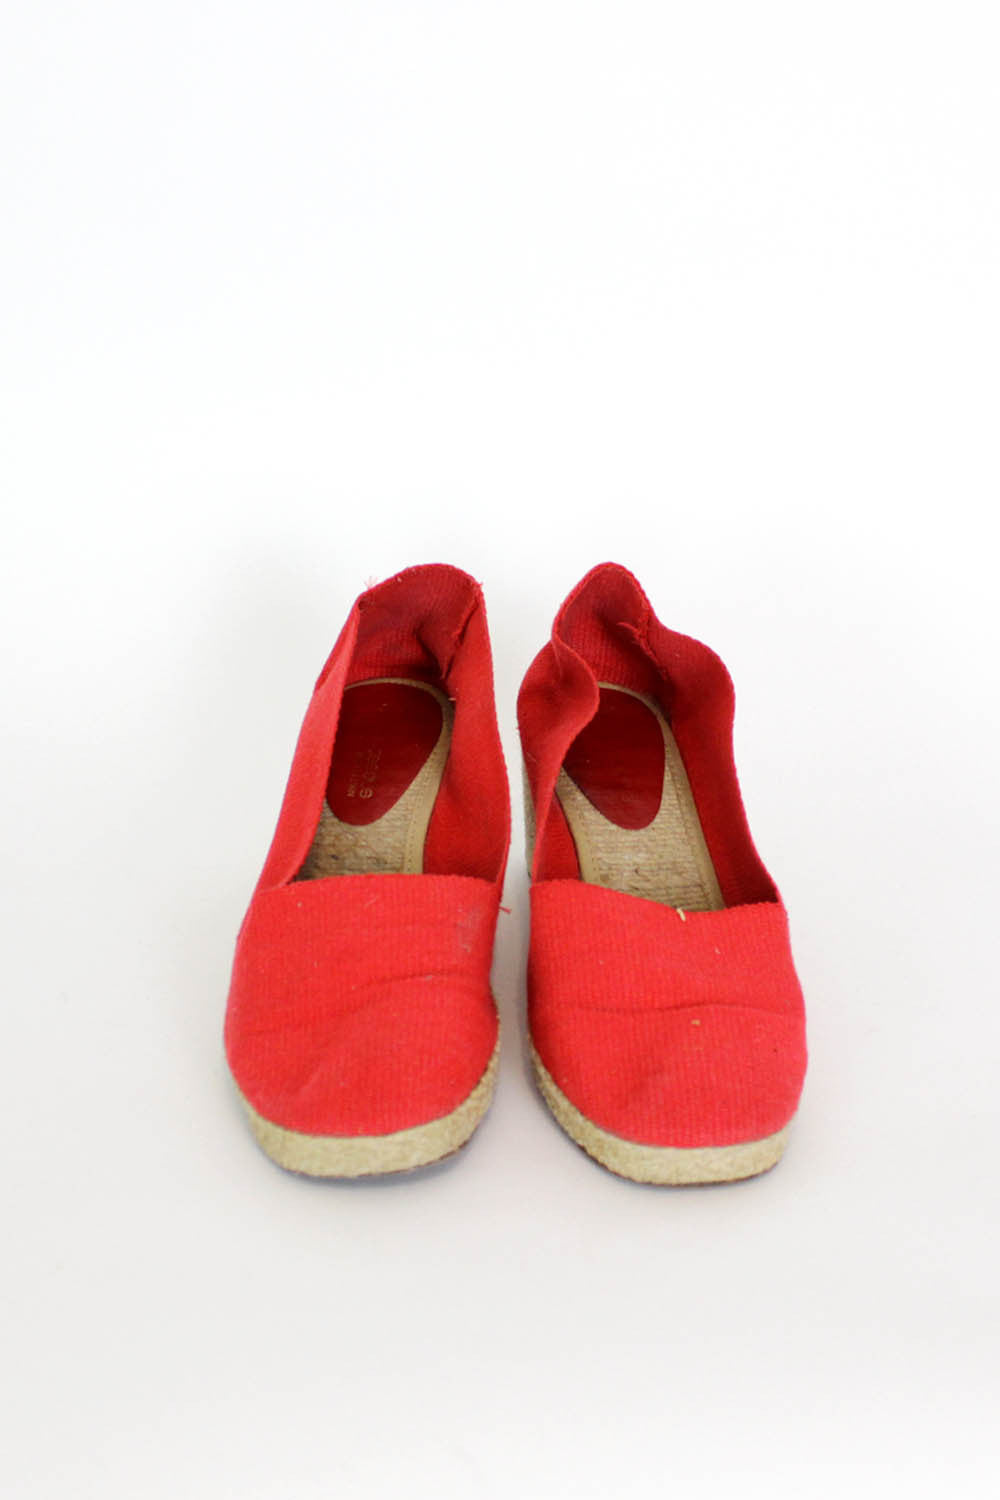 Andre Assous Canvas Wedges 7.5